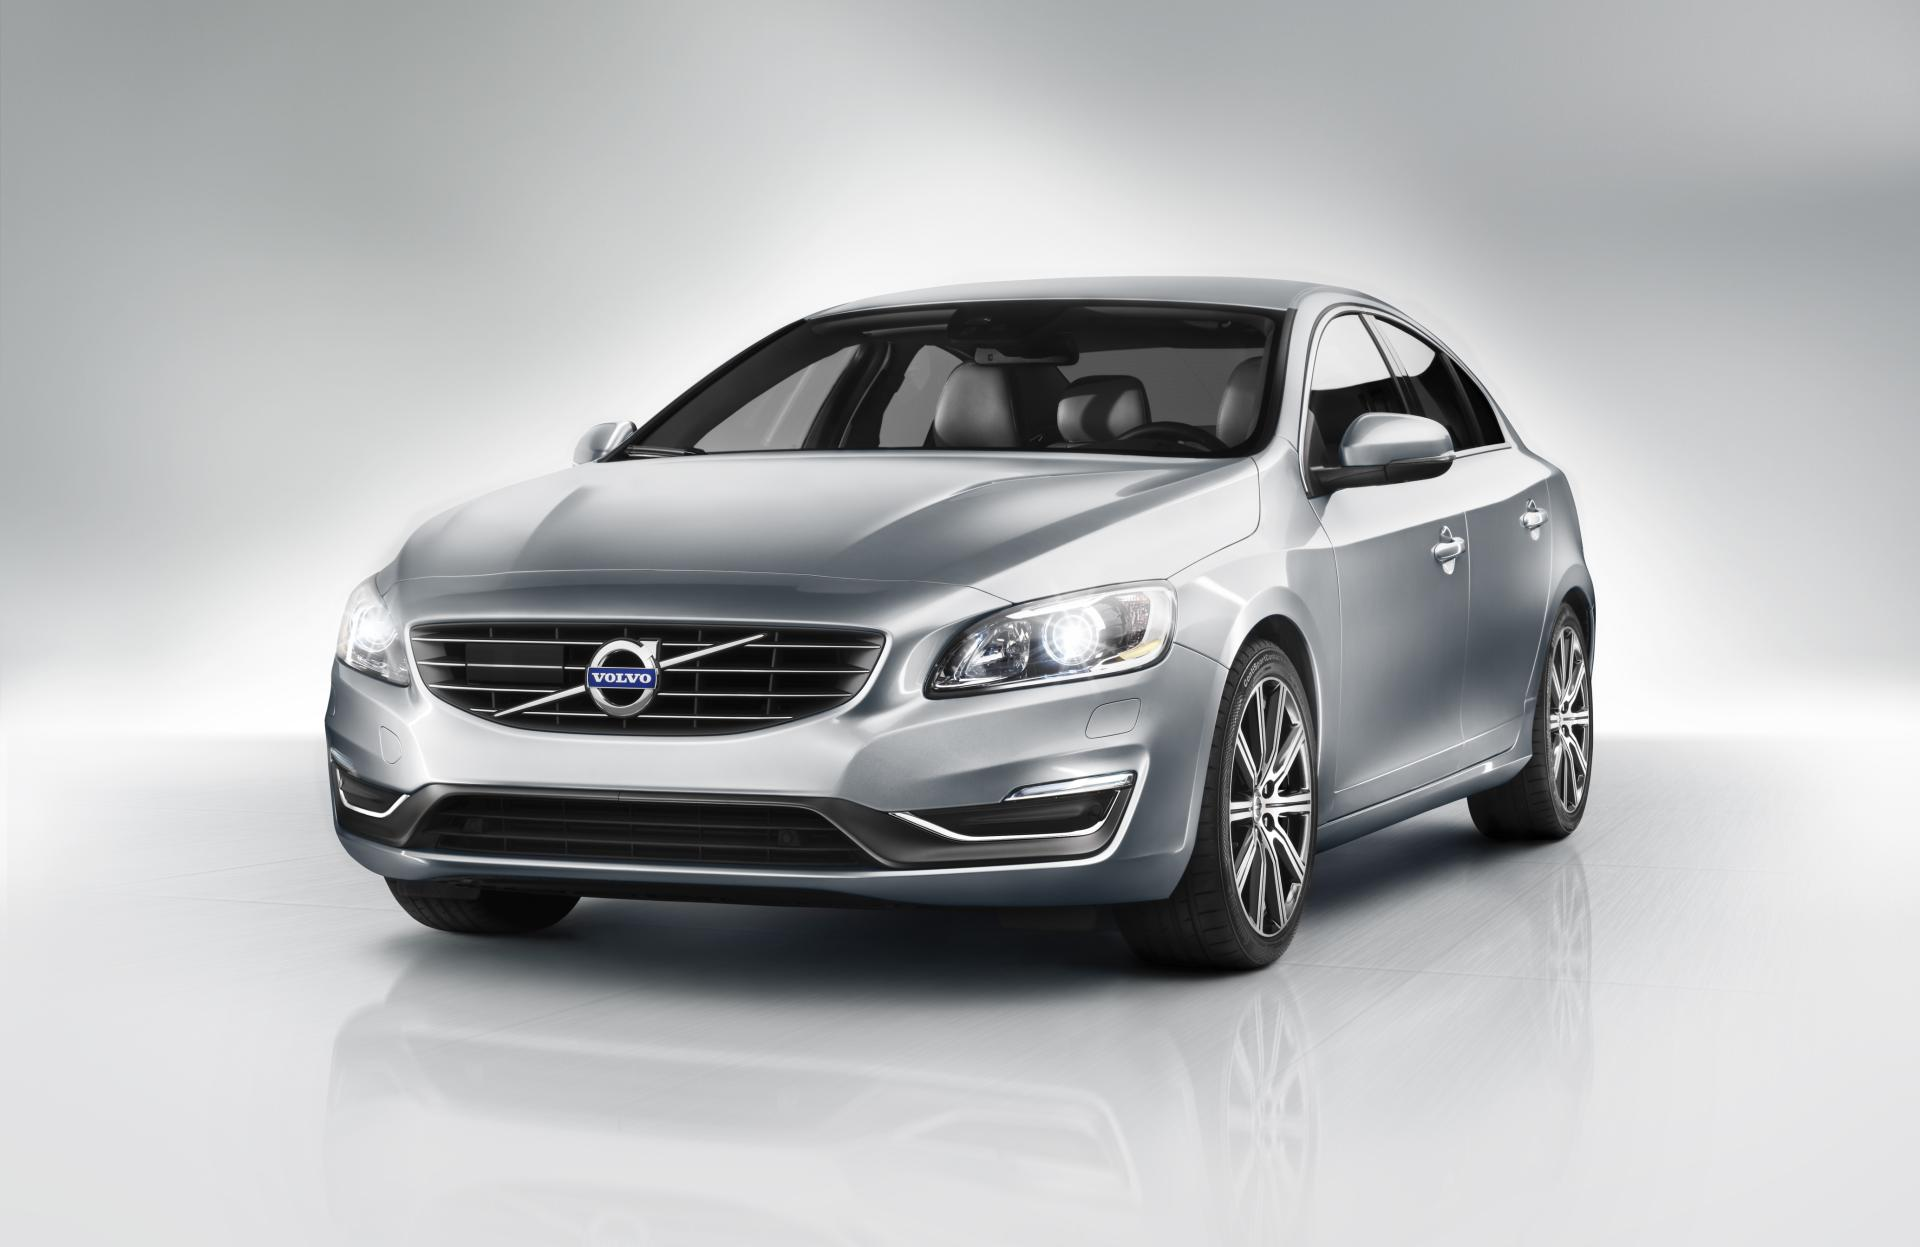 2014 Volvo S60 Technical Specifications and data Engine